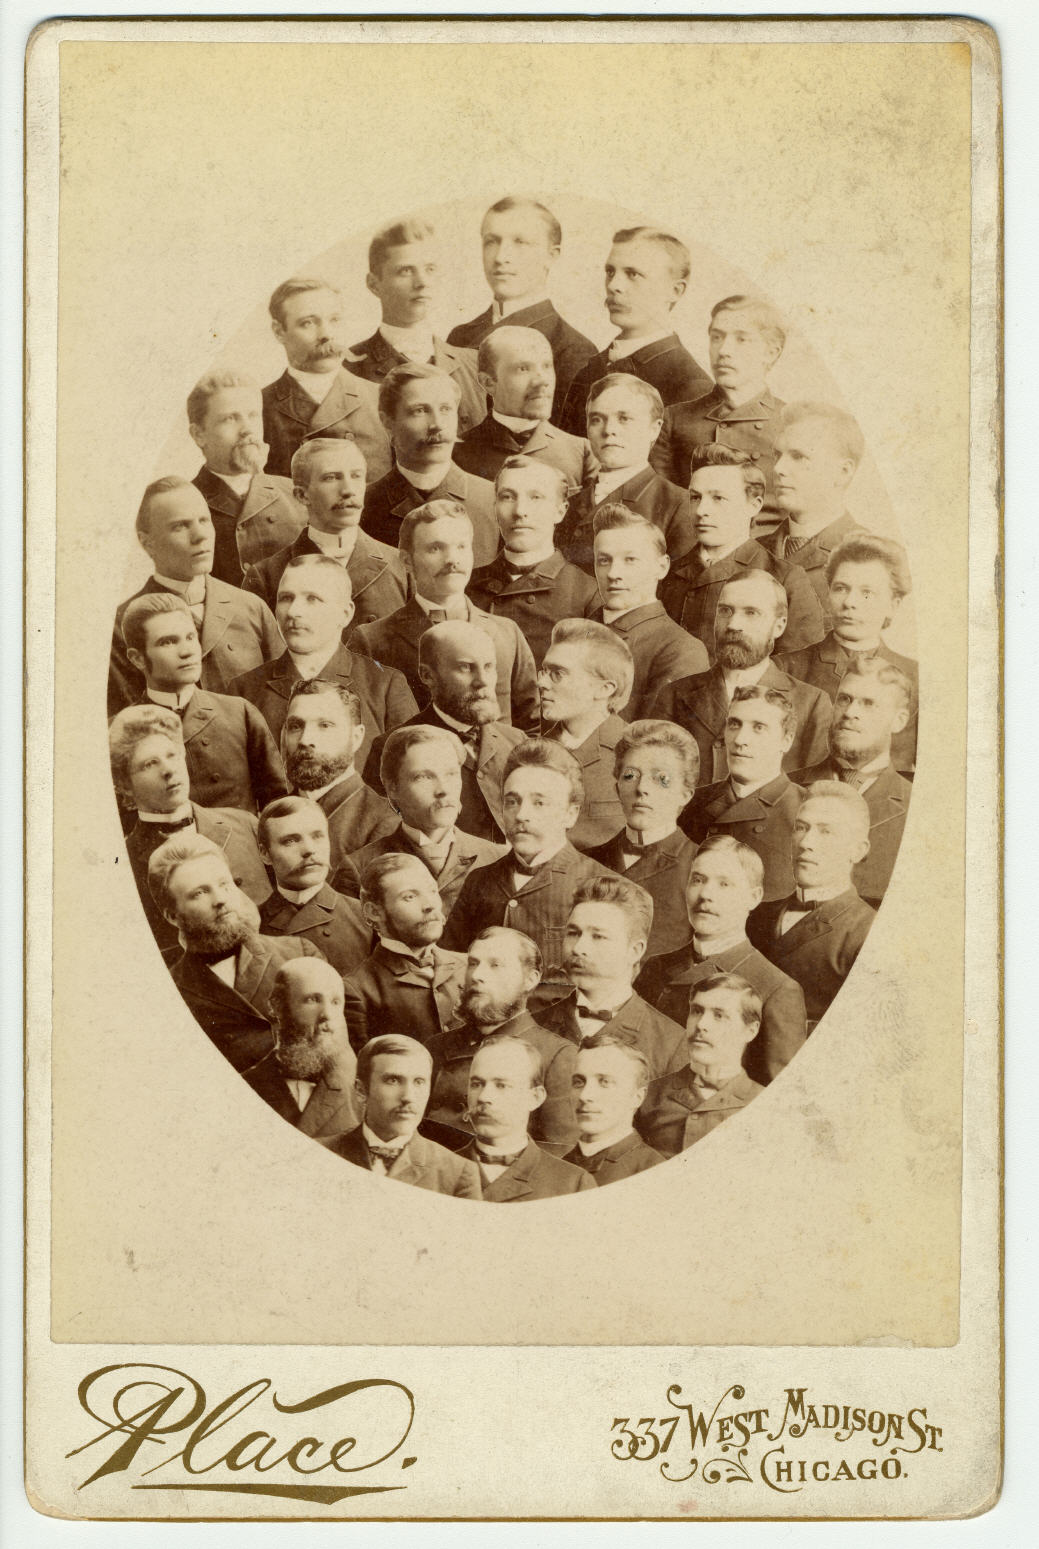 Composite of Swedish Department students at CTU, Risberg and D. Nyvall in middle (CAHL 5295)